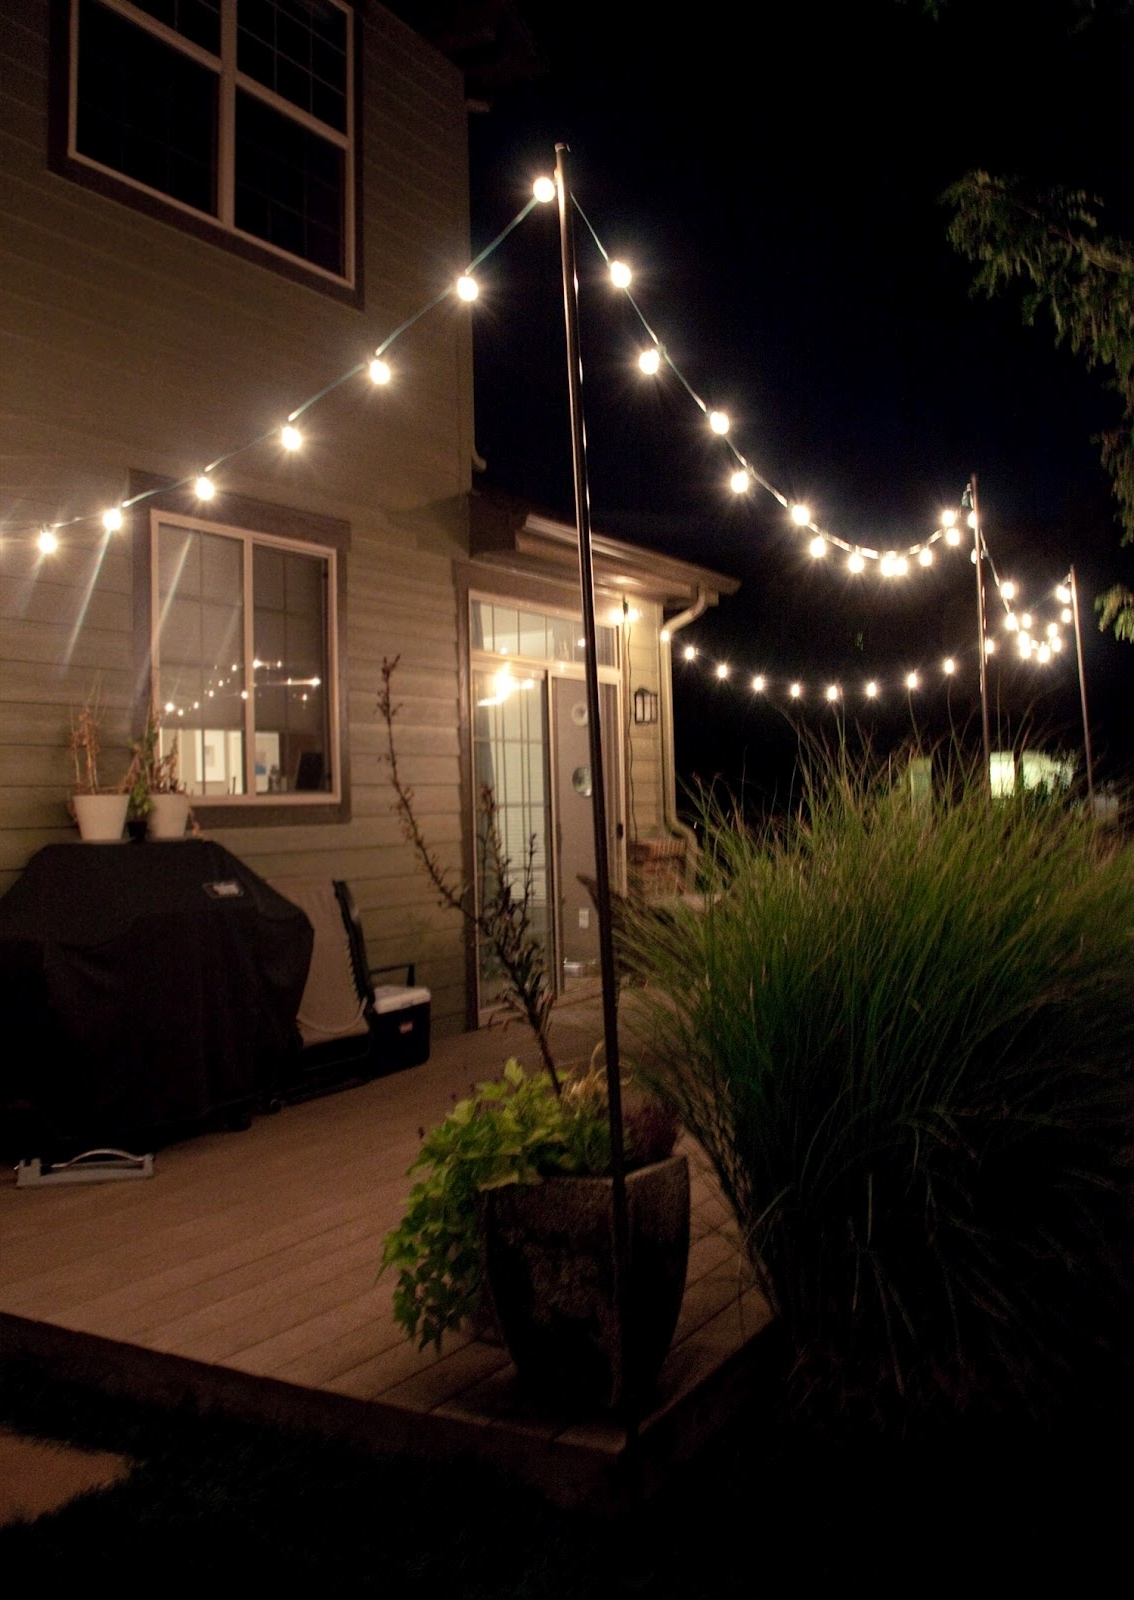 Hanging Outdoor Lights In Backyard With Well Liked Diy String Light Poles In Under One Hour For Less Than $ (View 5 of 20)